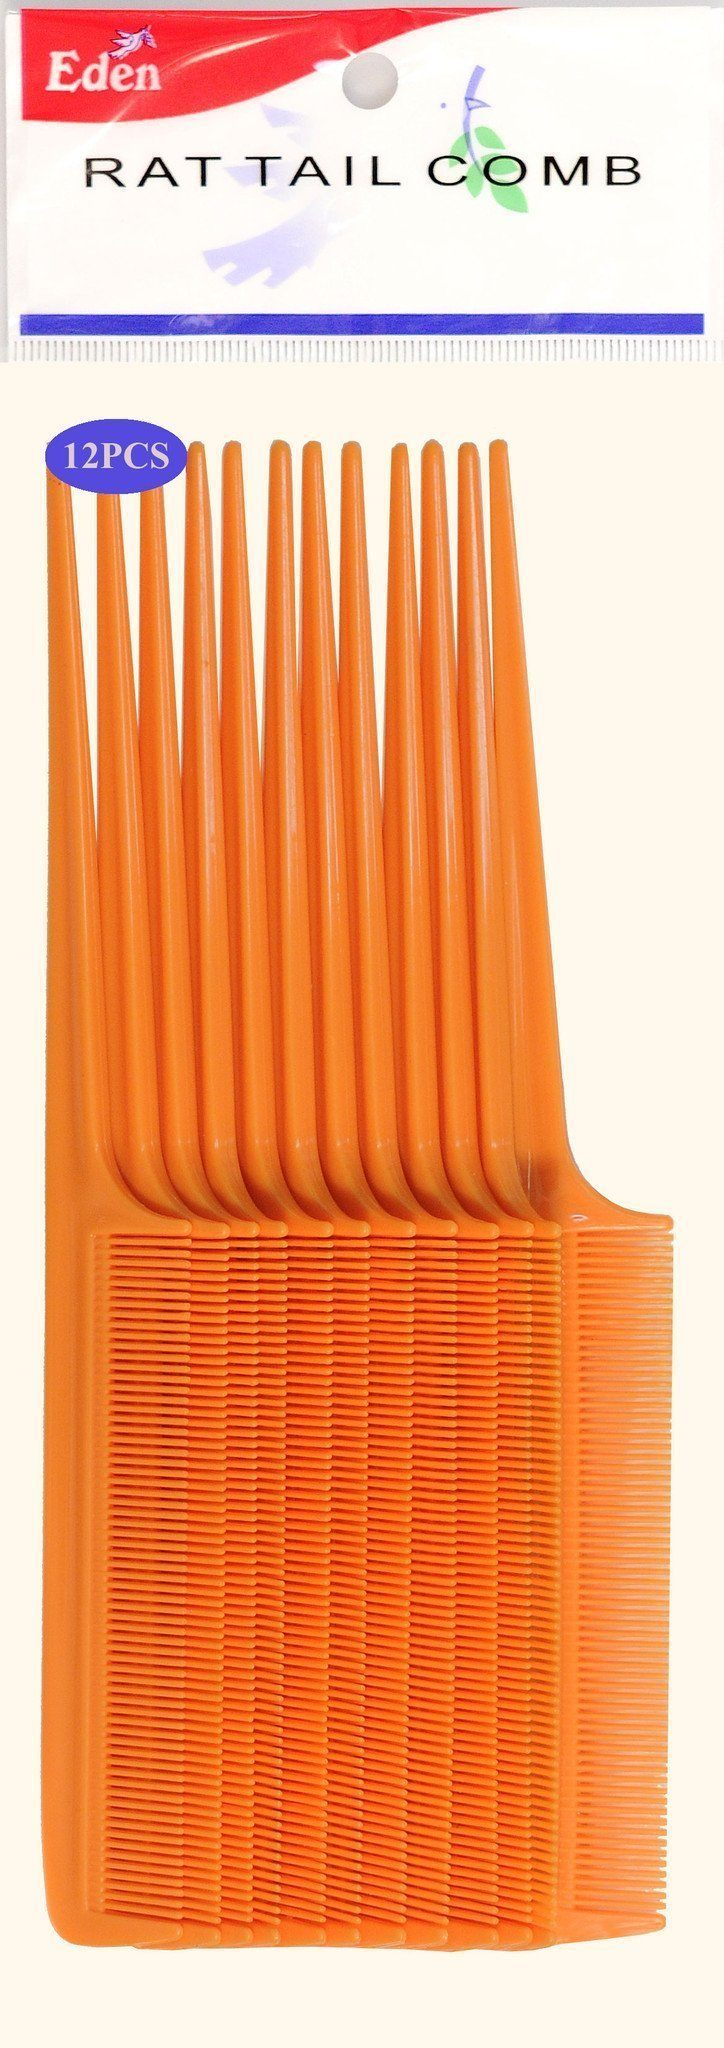 #10111 Eden 12pc Rat Tail Comb